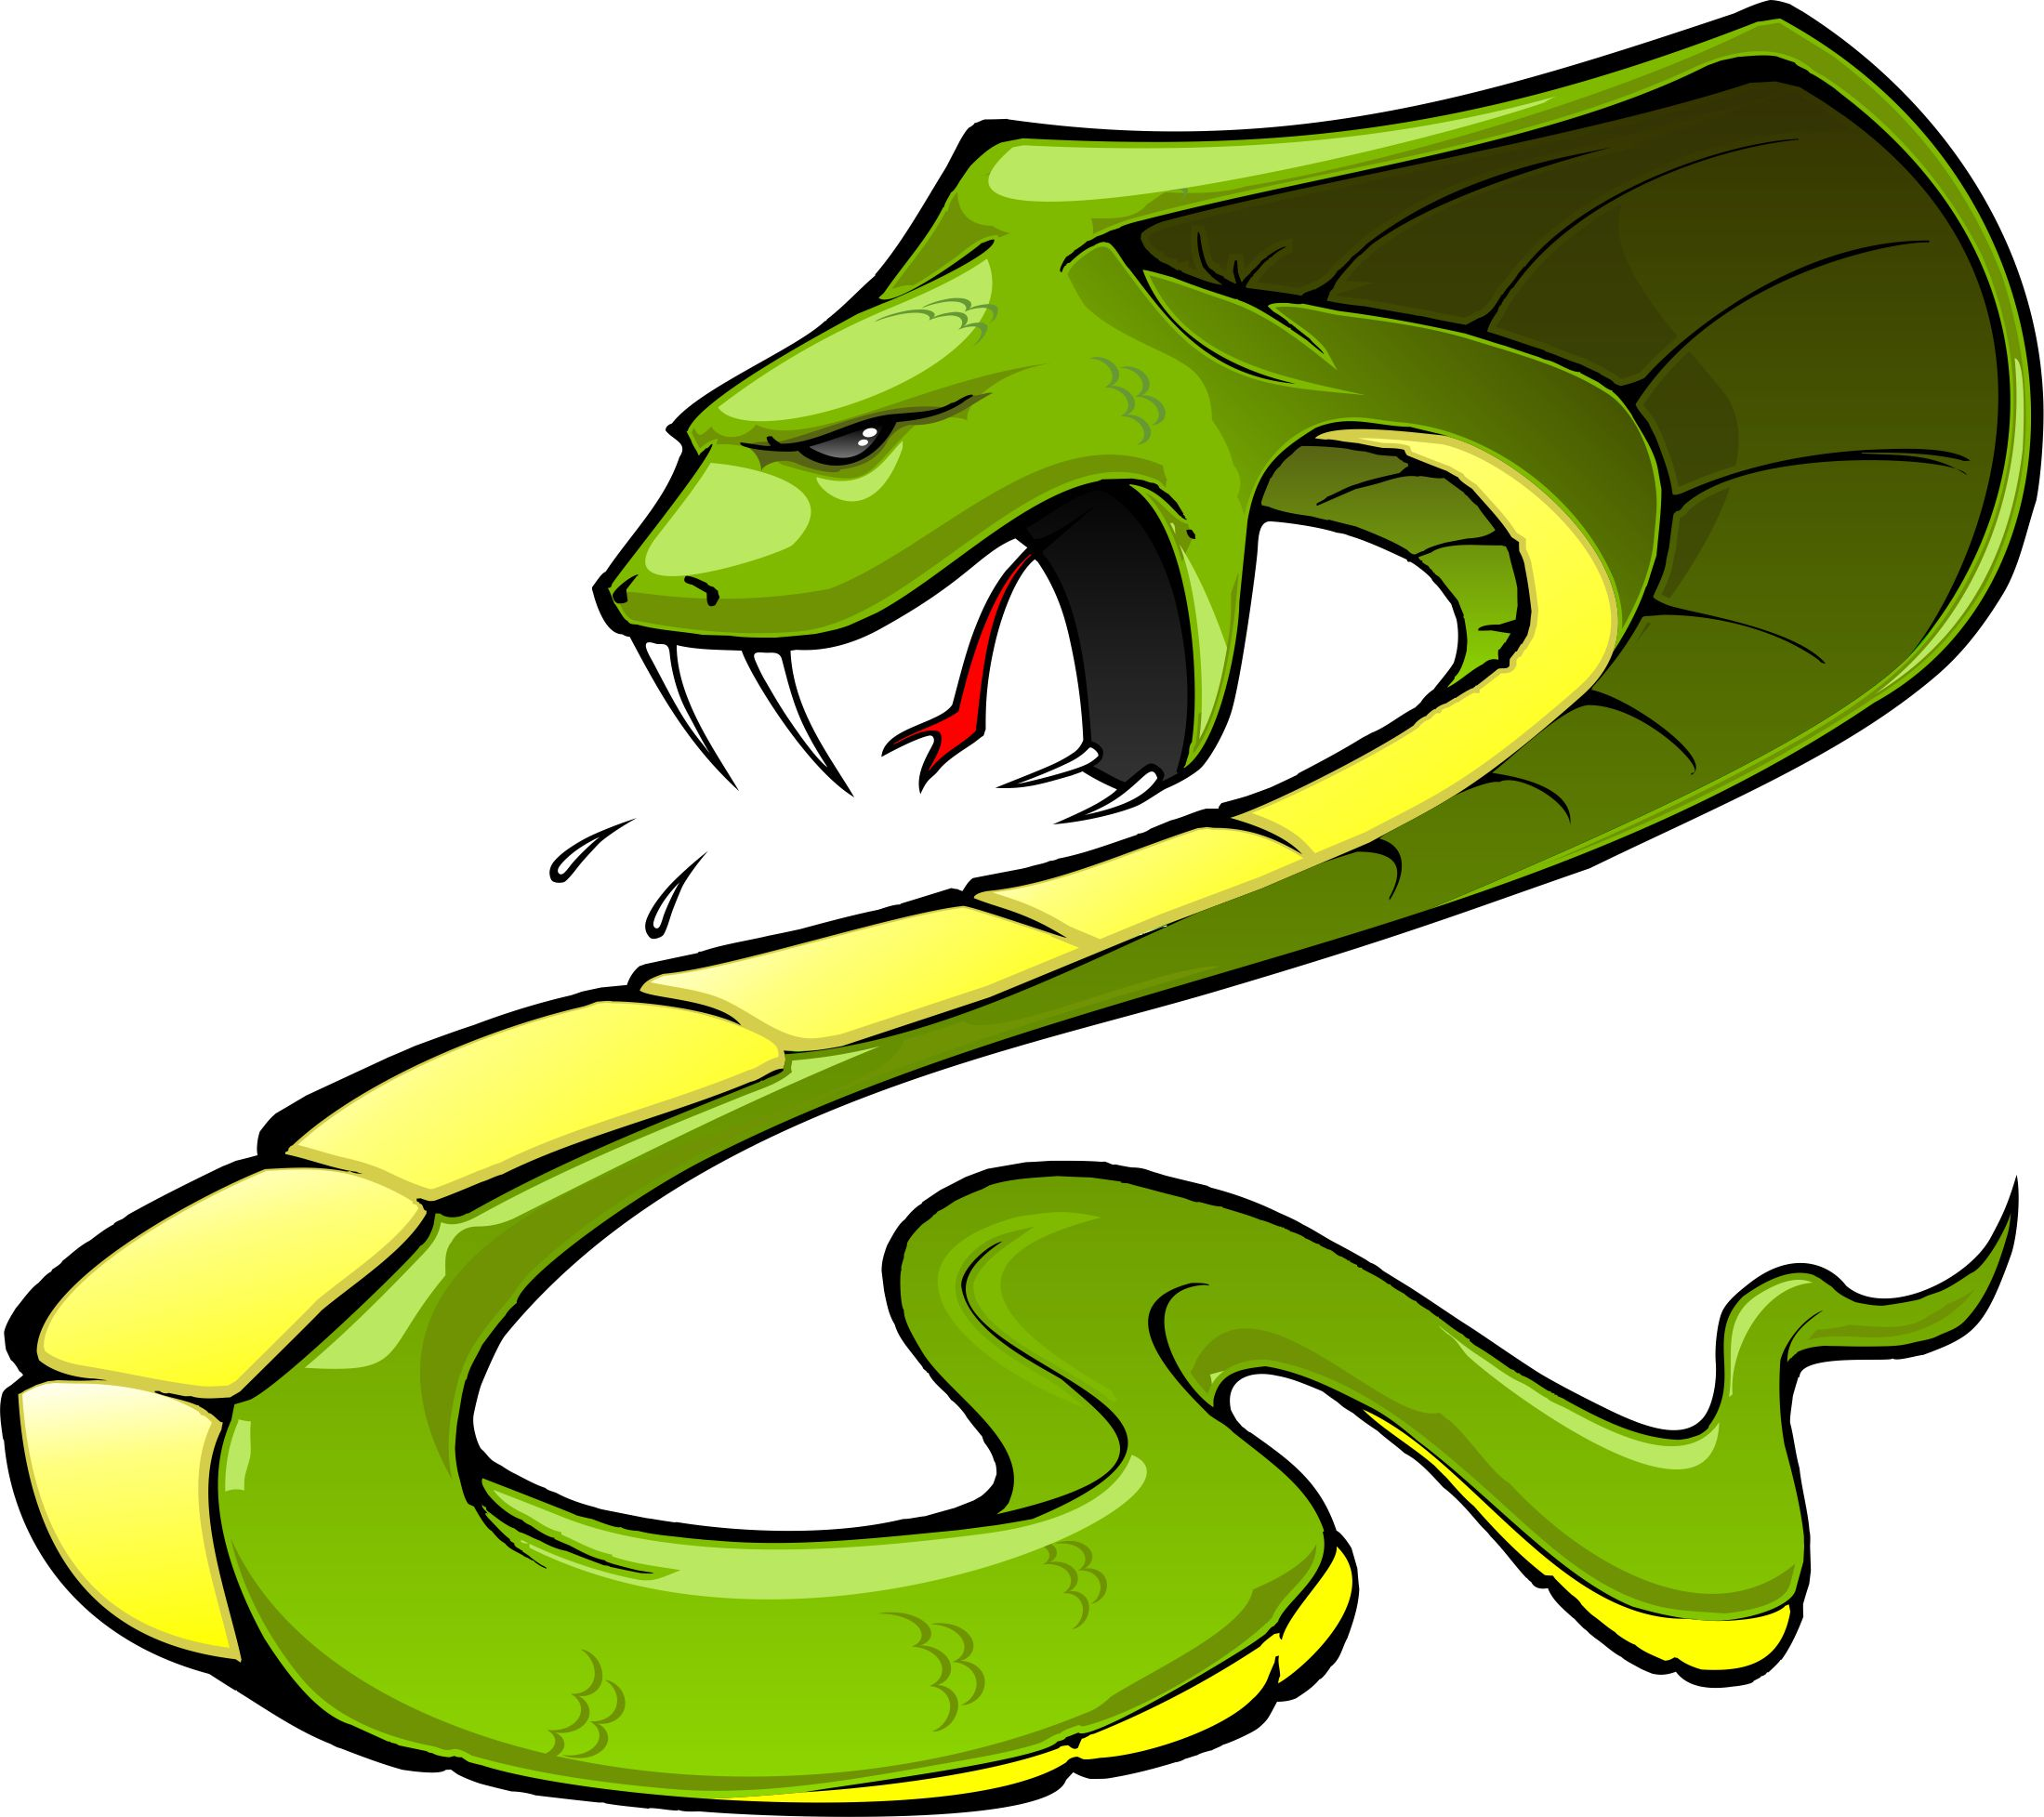 Vipers clipart - Clipg... Viper Snake Head